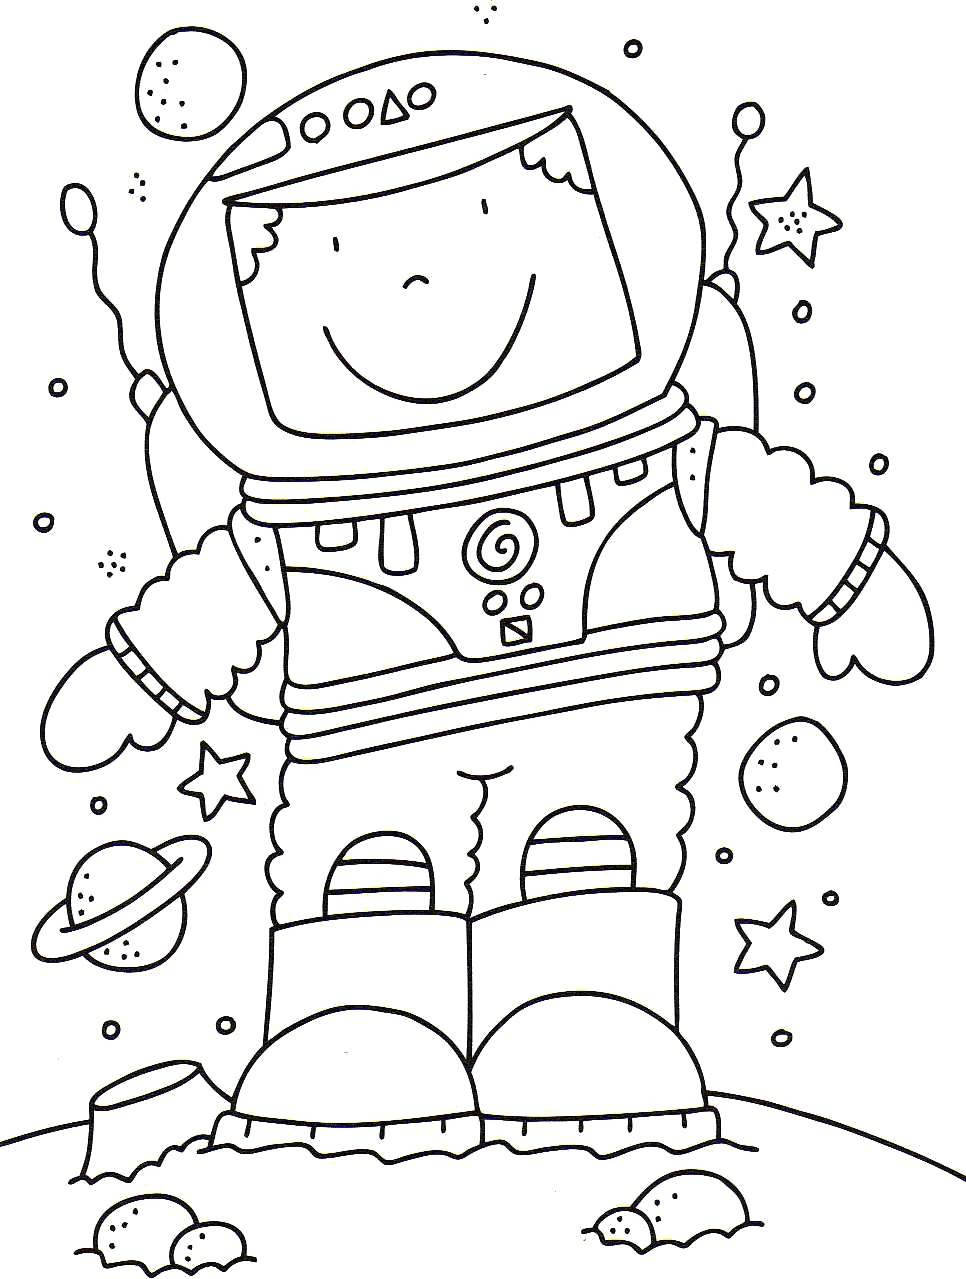 Outer Space Coloring Pages For Adults  Outer Space Coloring Pages coloringsuite